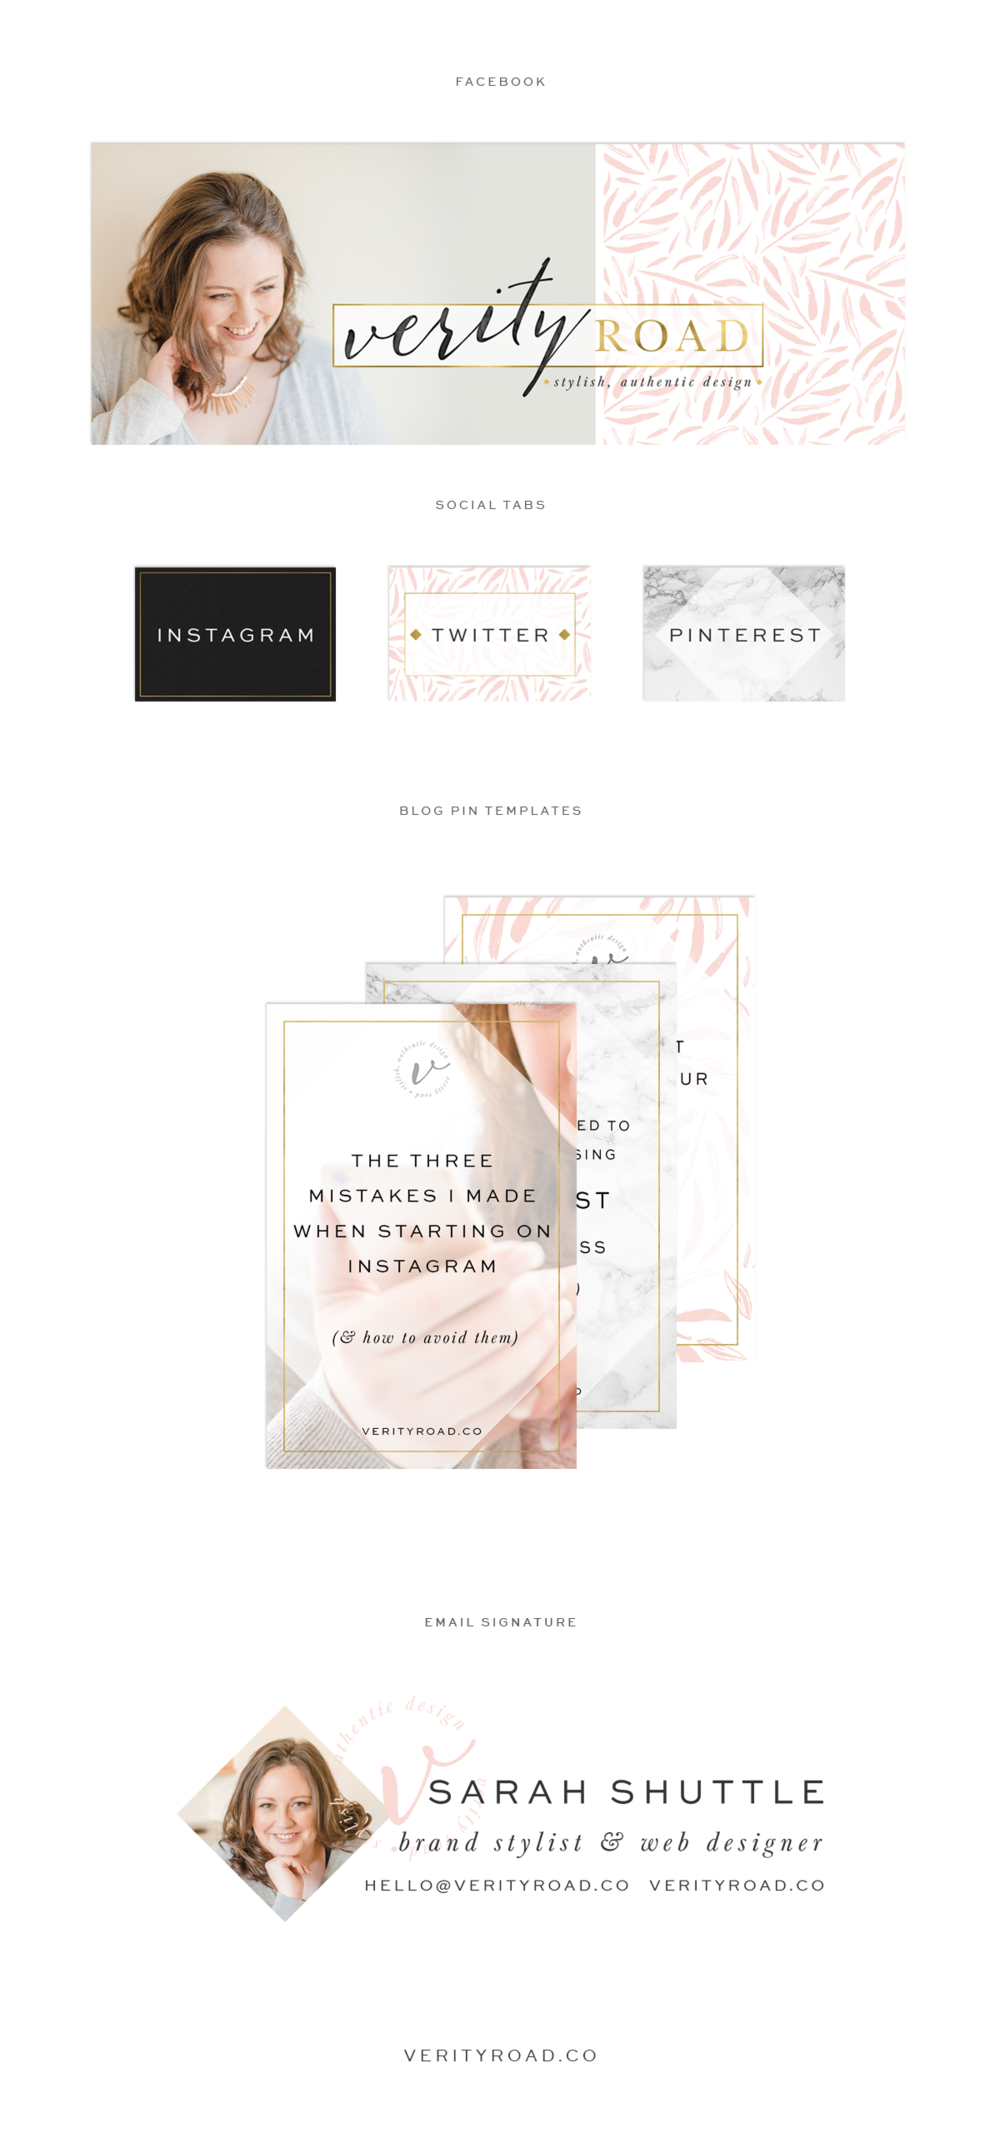 social media branding for verity road, luxury brand styling and web design for female entrepreneurs. Feminine branding, luxury branding, feminine business, inspiration board of typography, script font, color palette, calligraphy, sans serif, black, latte, blush, pink, gold, color palette, pattern, floral inspiration, watercolor, geometric pattern, business owner. instagram, pinterest, blog pin graphic, facebook cover. See more: brand board, brand style guide, mood board and web design.